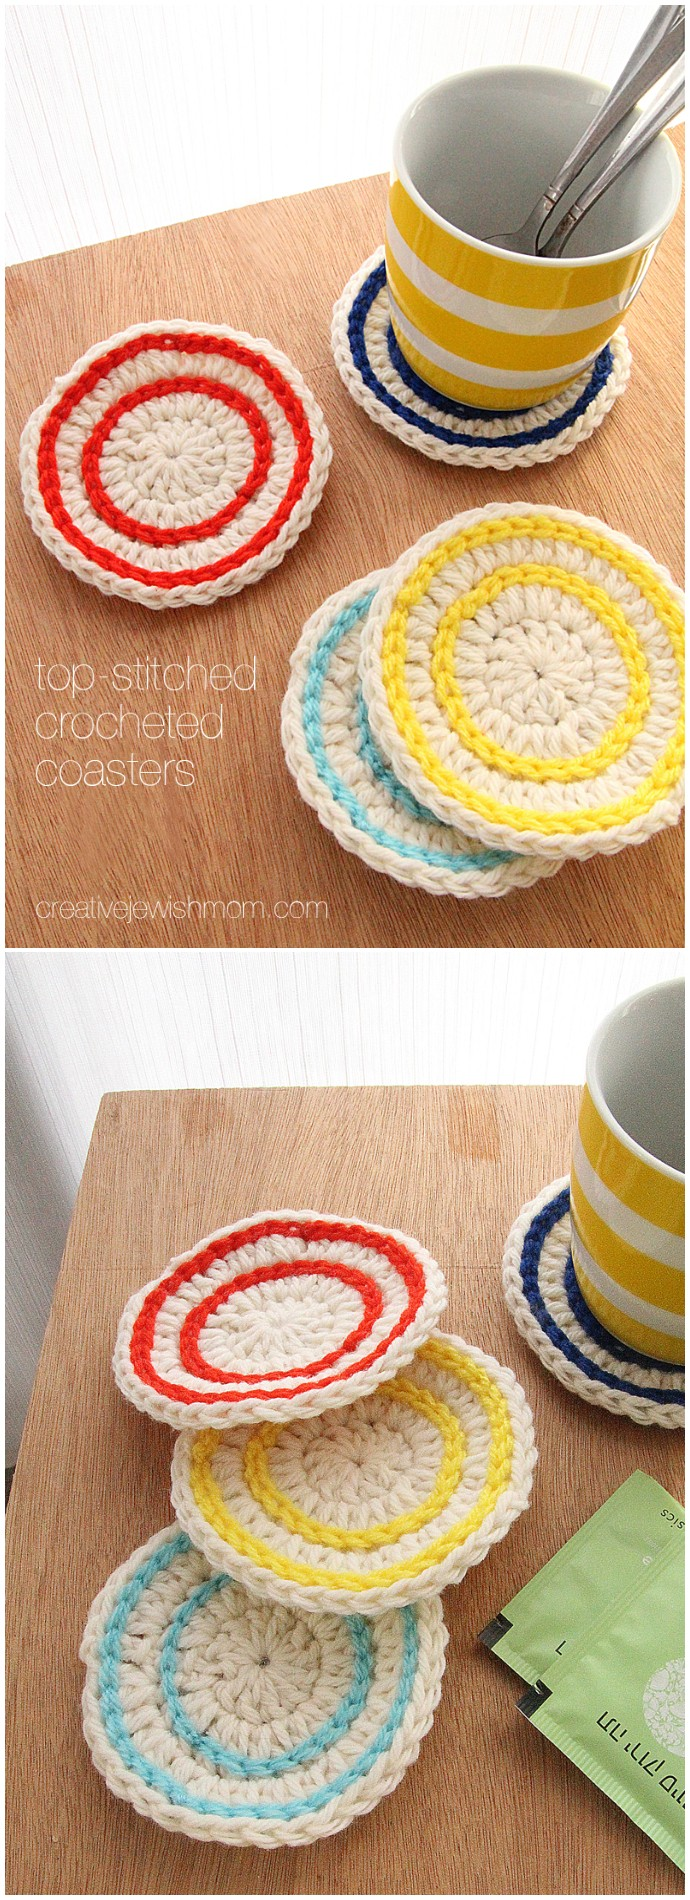 Free Crocheted Coasters Are The Perfect Tiny Gift